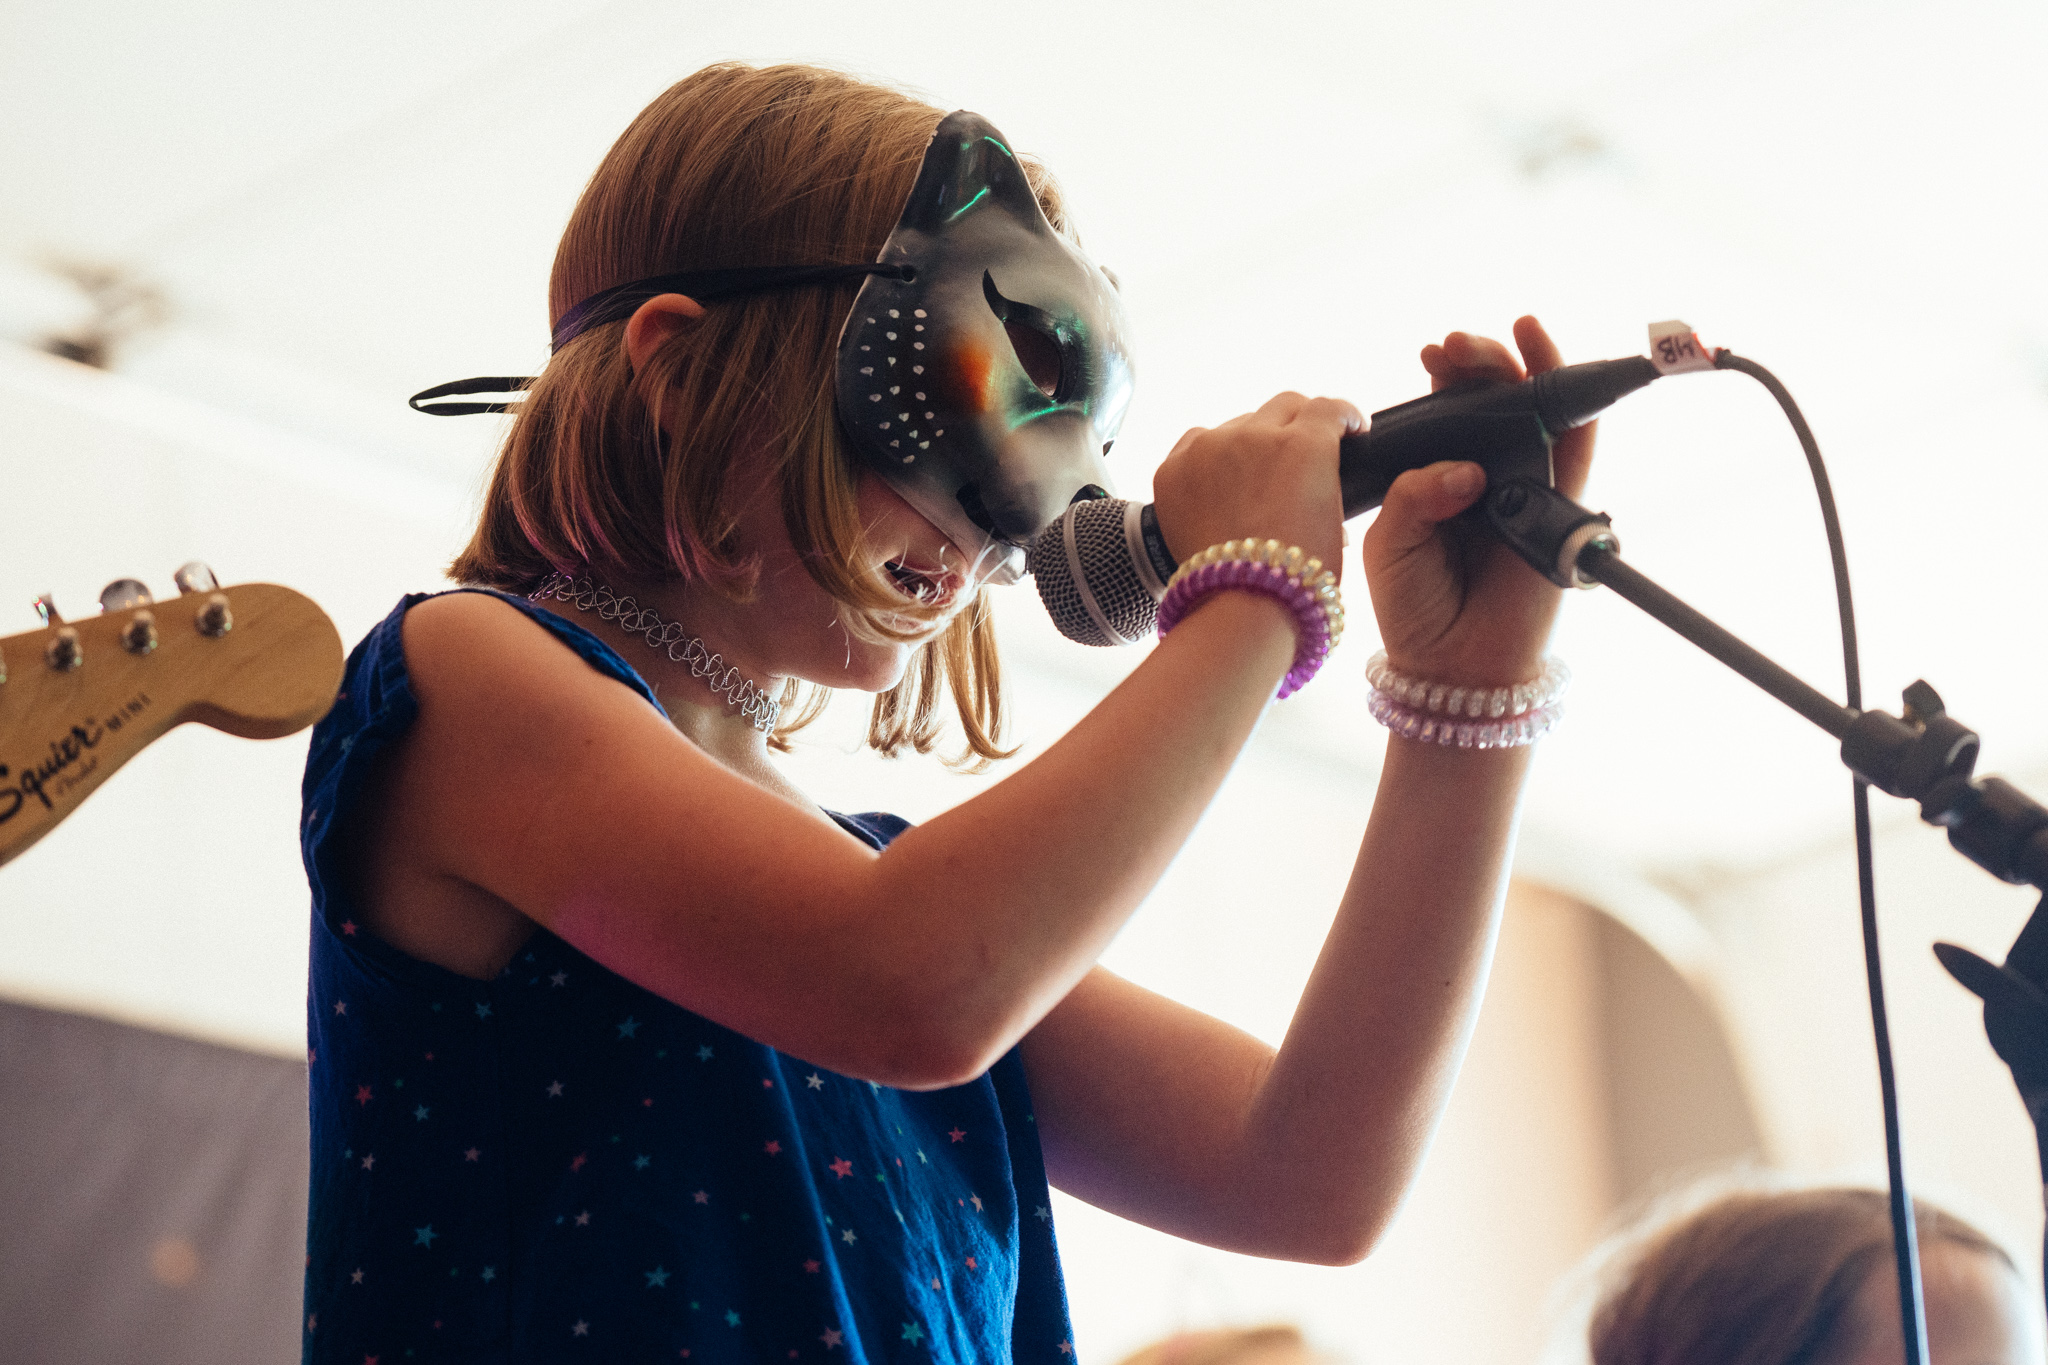 Pop Rocks is for beginning music students ages 5-7. We make music education fun.